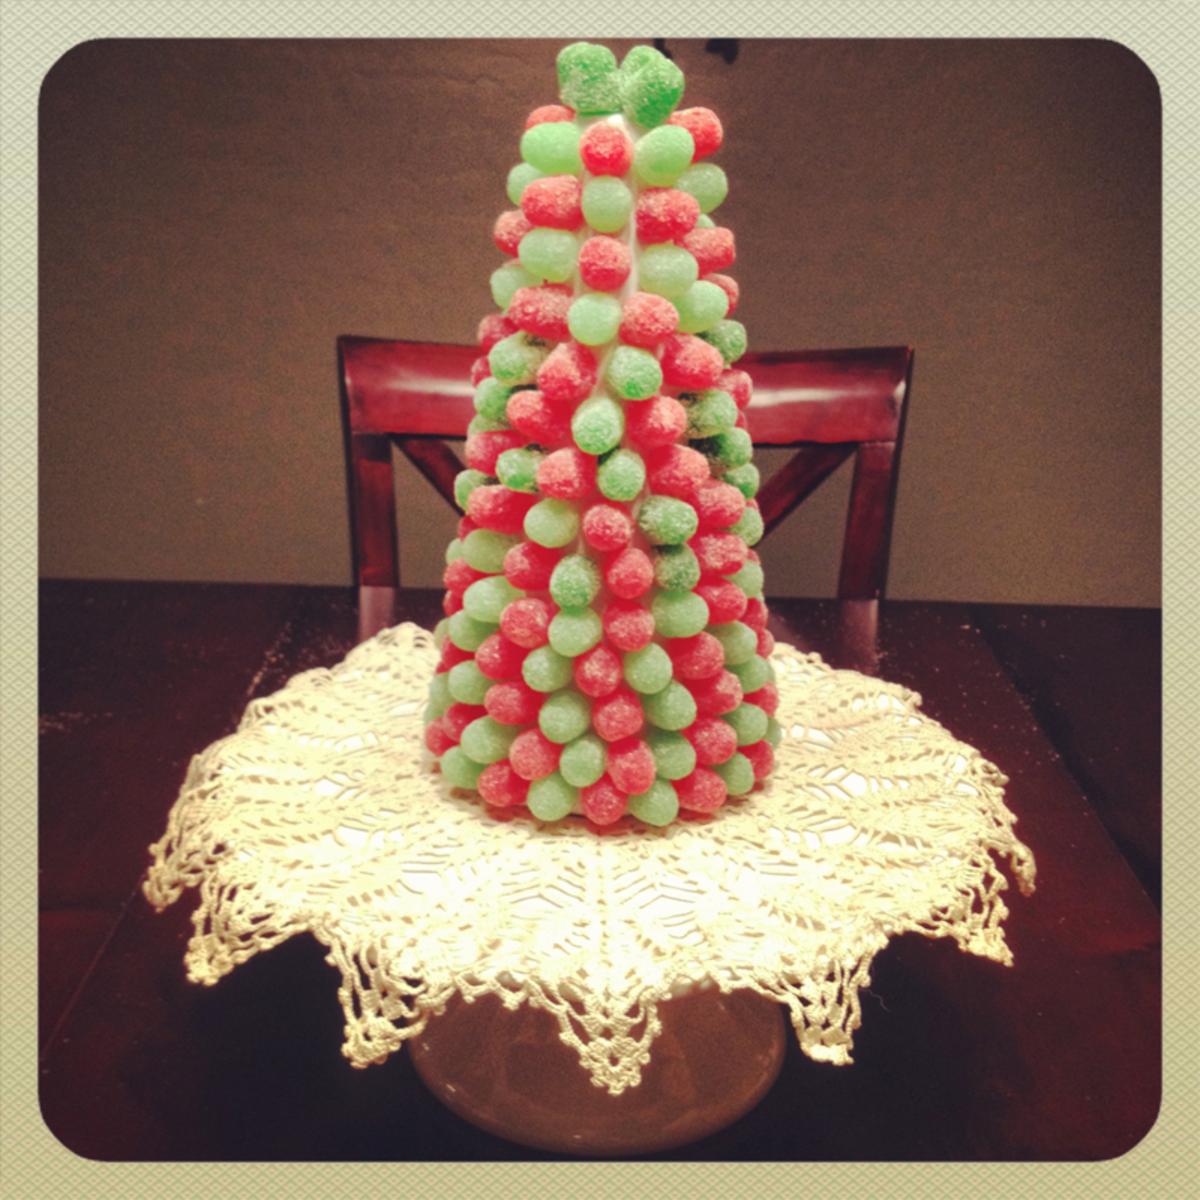 red and green gum drop Christmas Tree